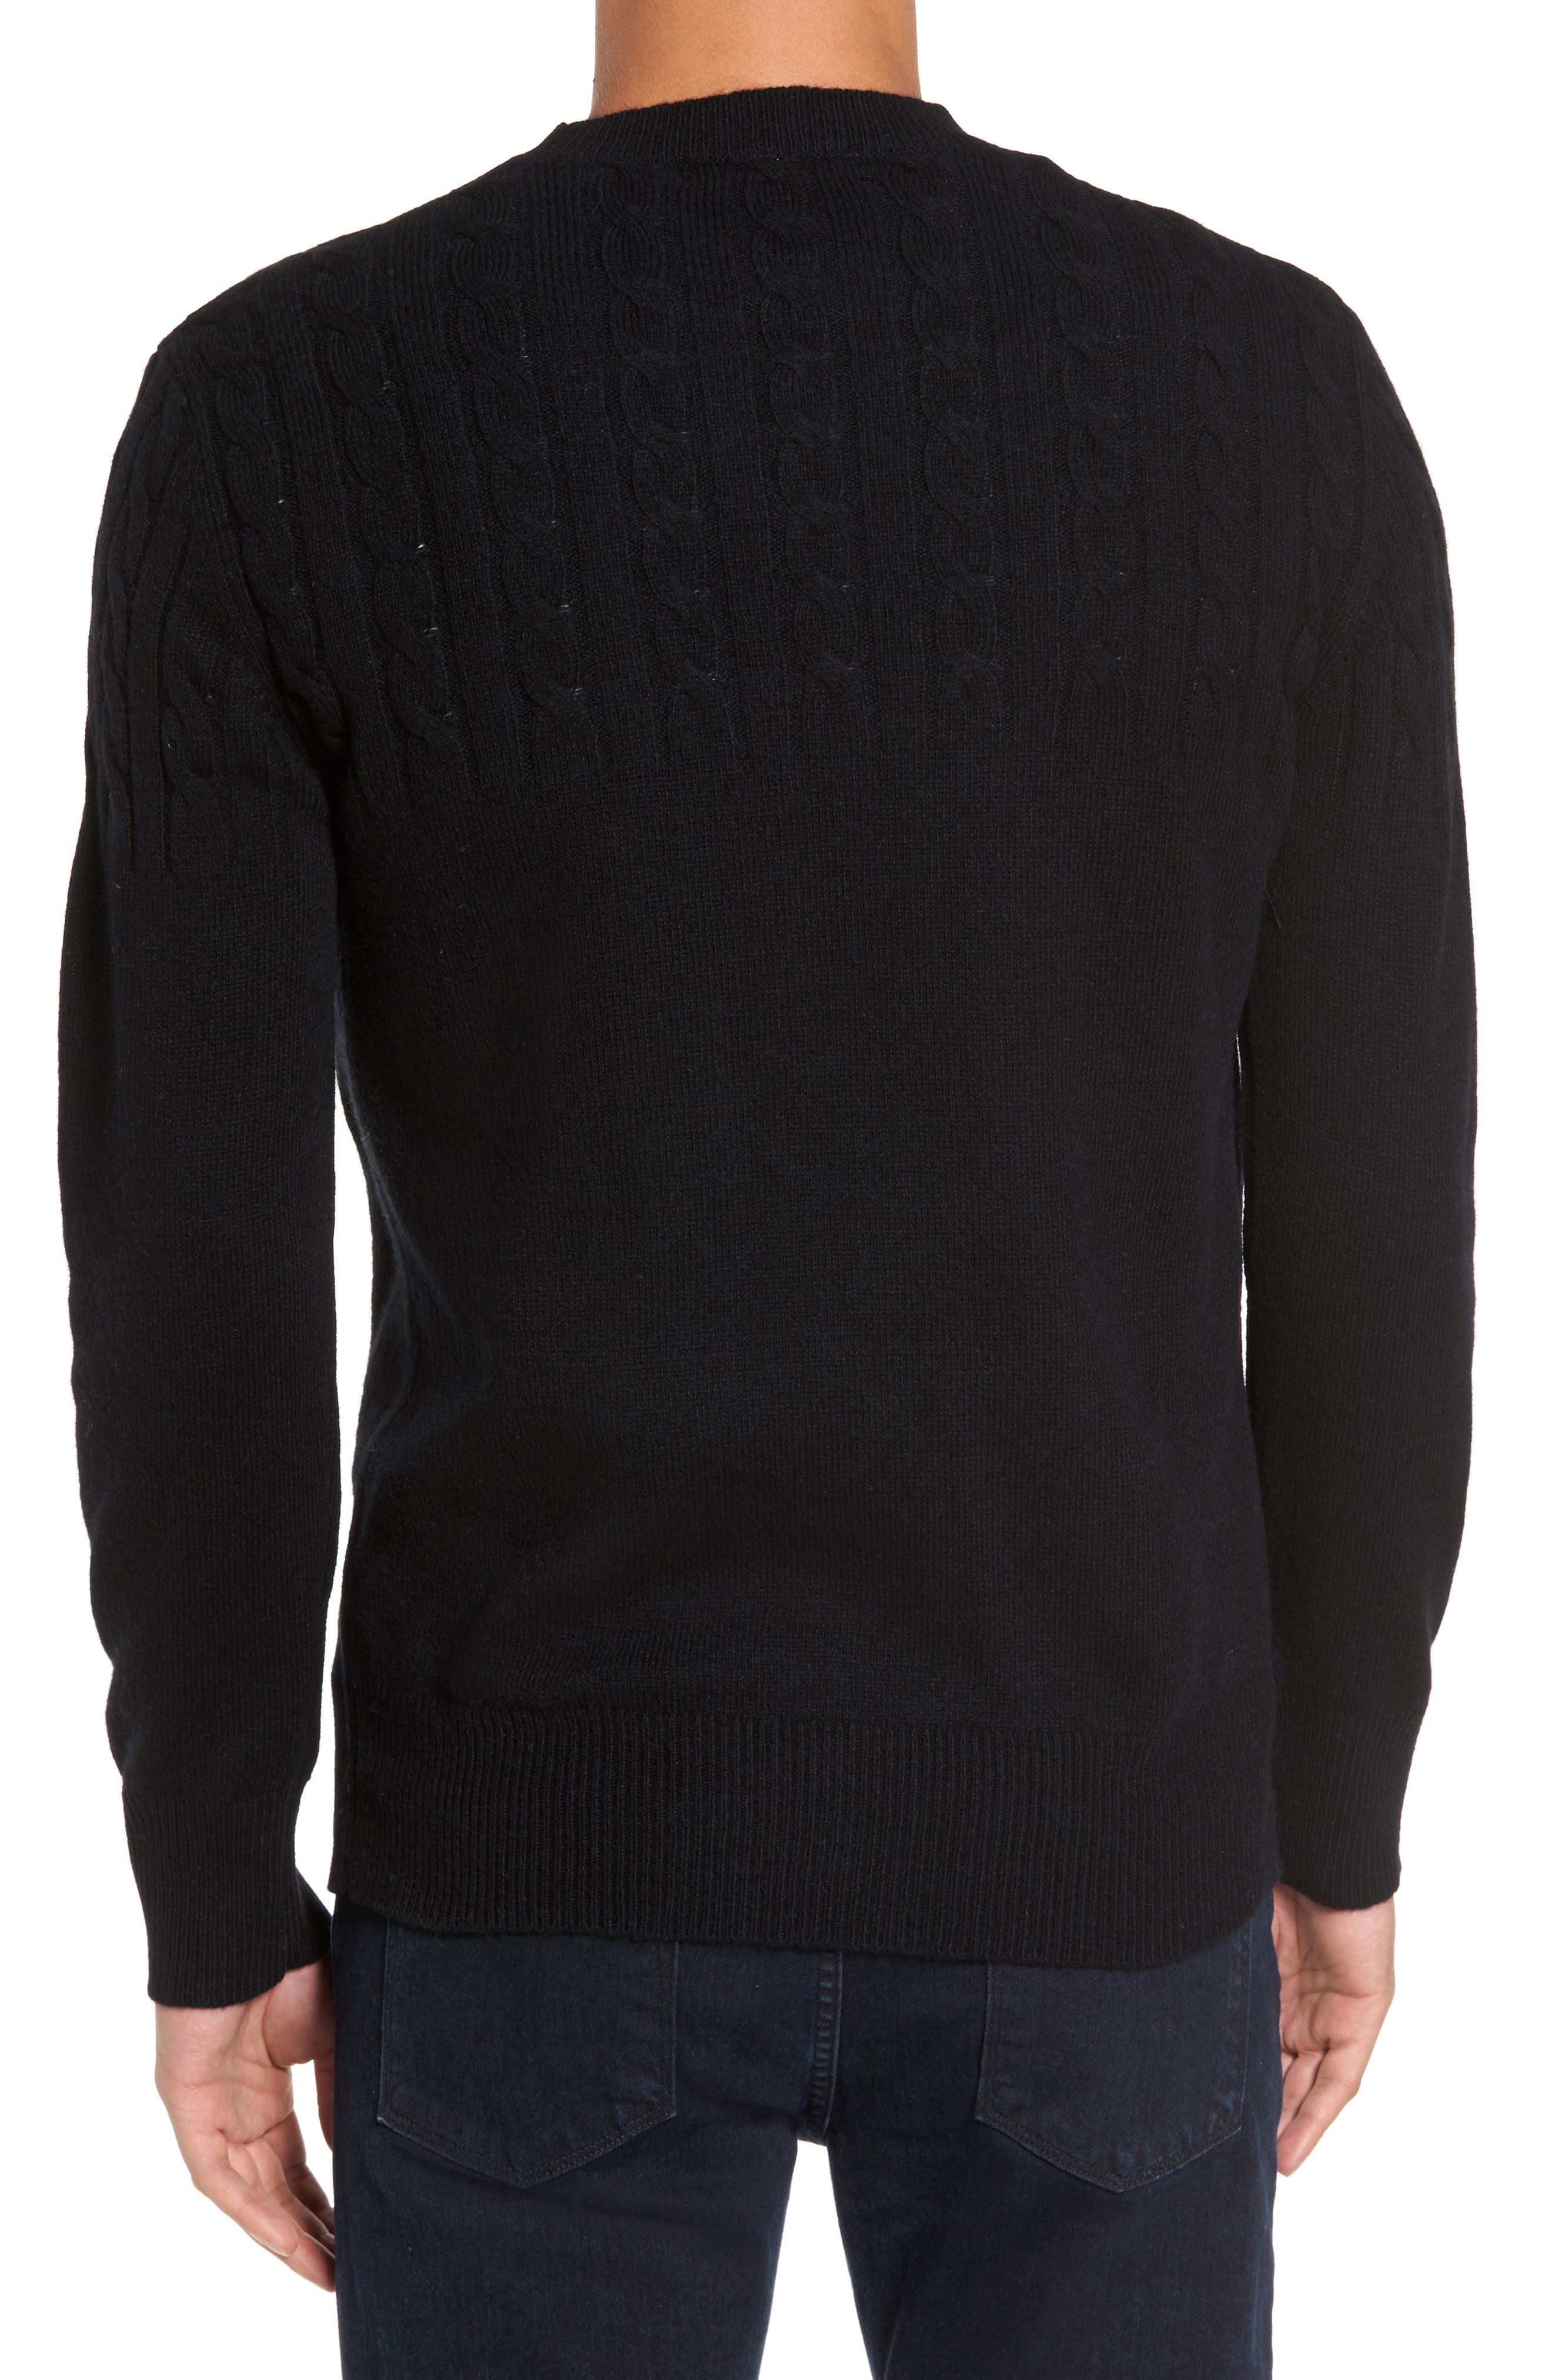 Wool Cable Knit Sweater,                             Alternate thumbnail 2, color,                             Black